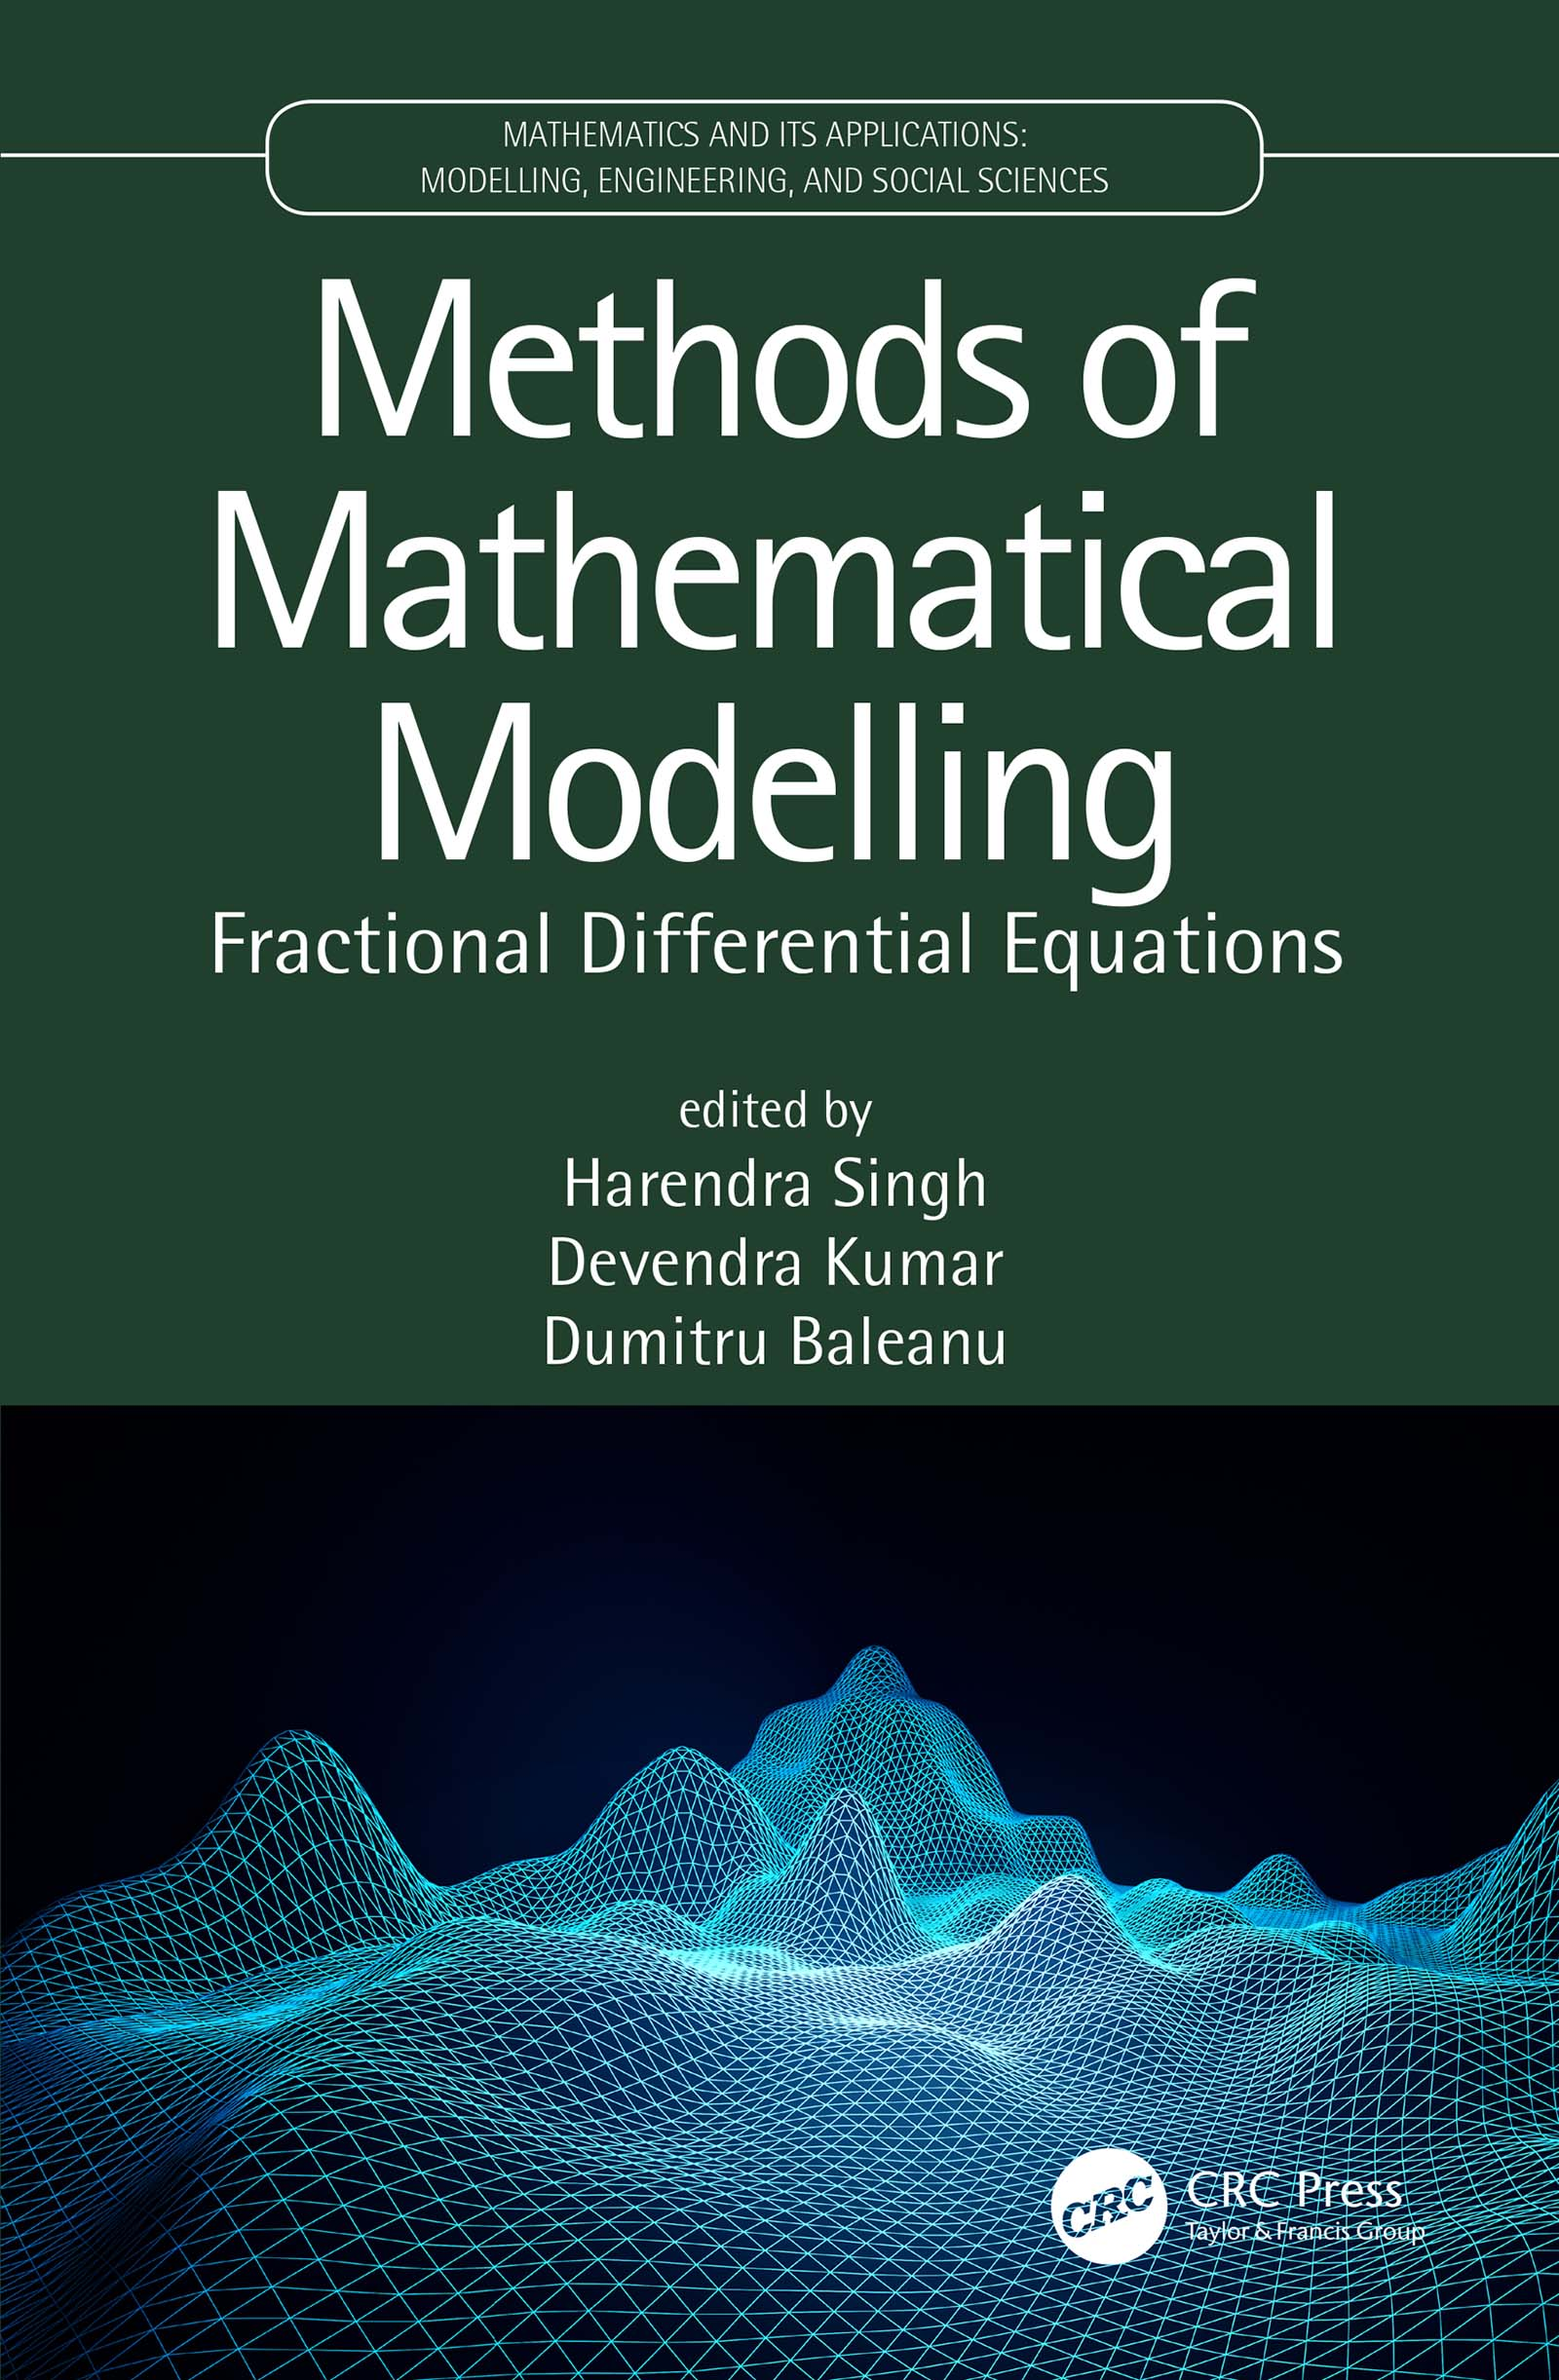 Methods of Mathematical Modelling: Fractional Differential Equations book cover